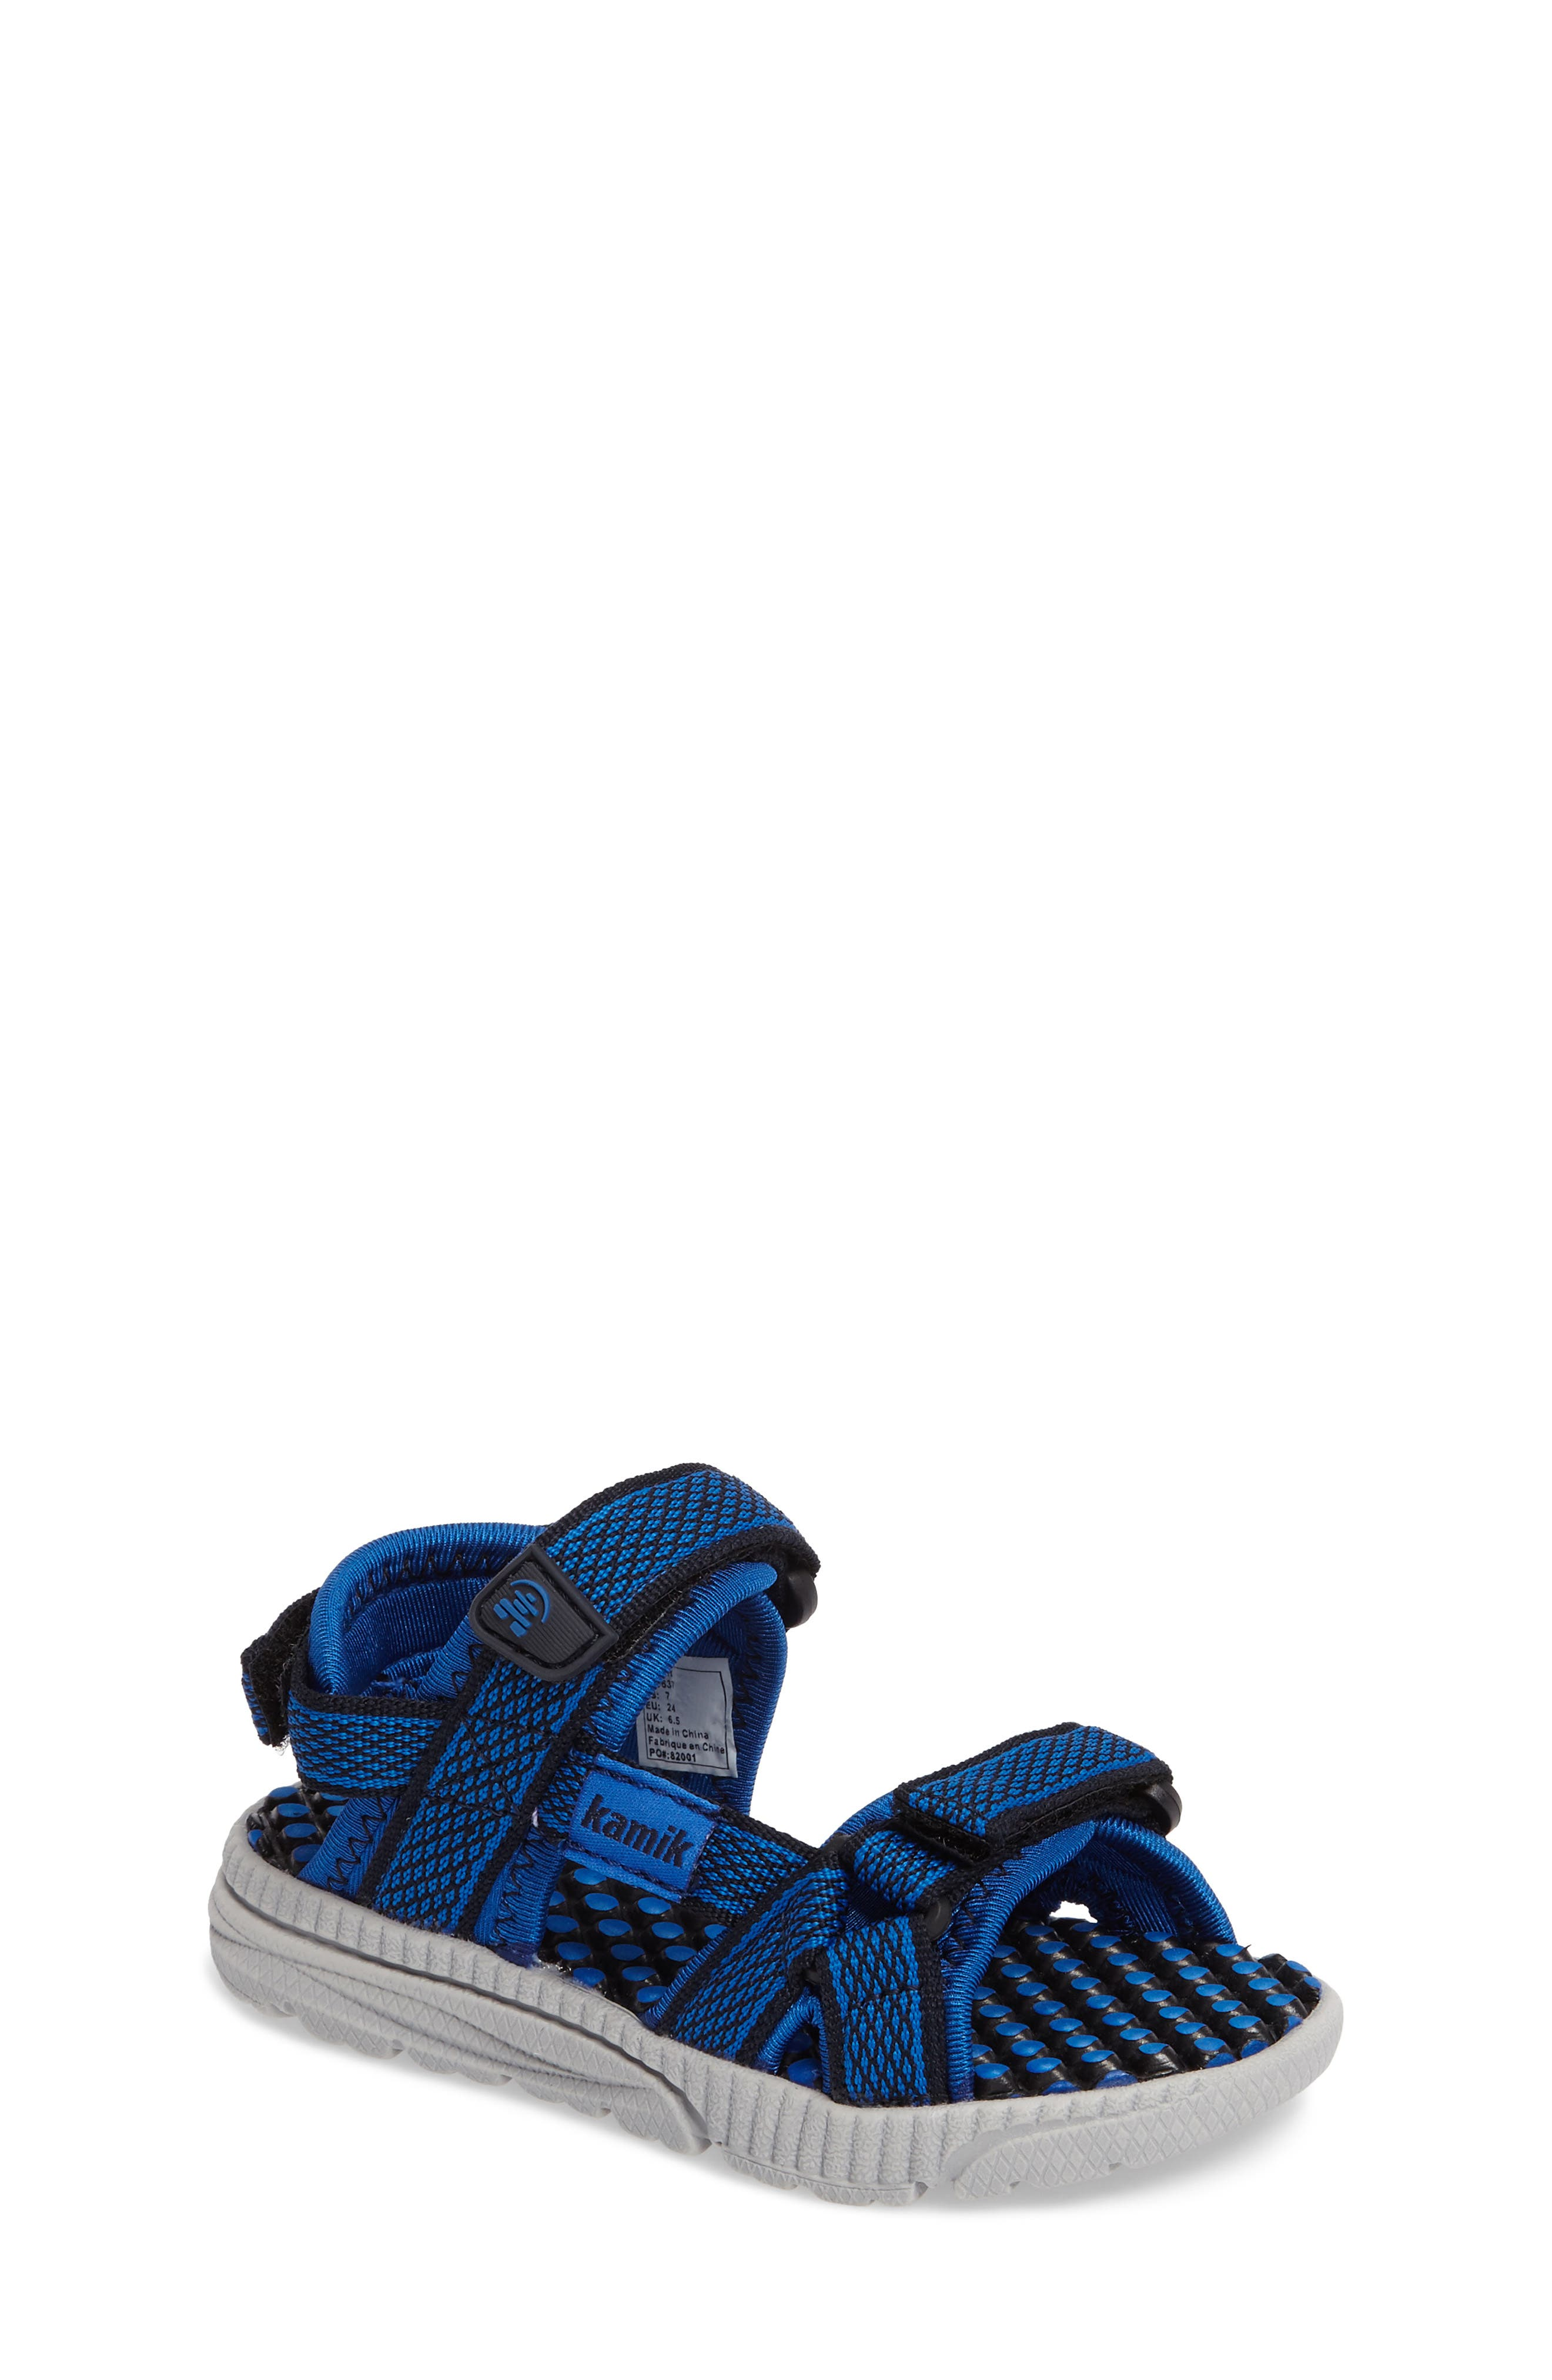 Kamik Match Sandals (Walker & Toddler)